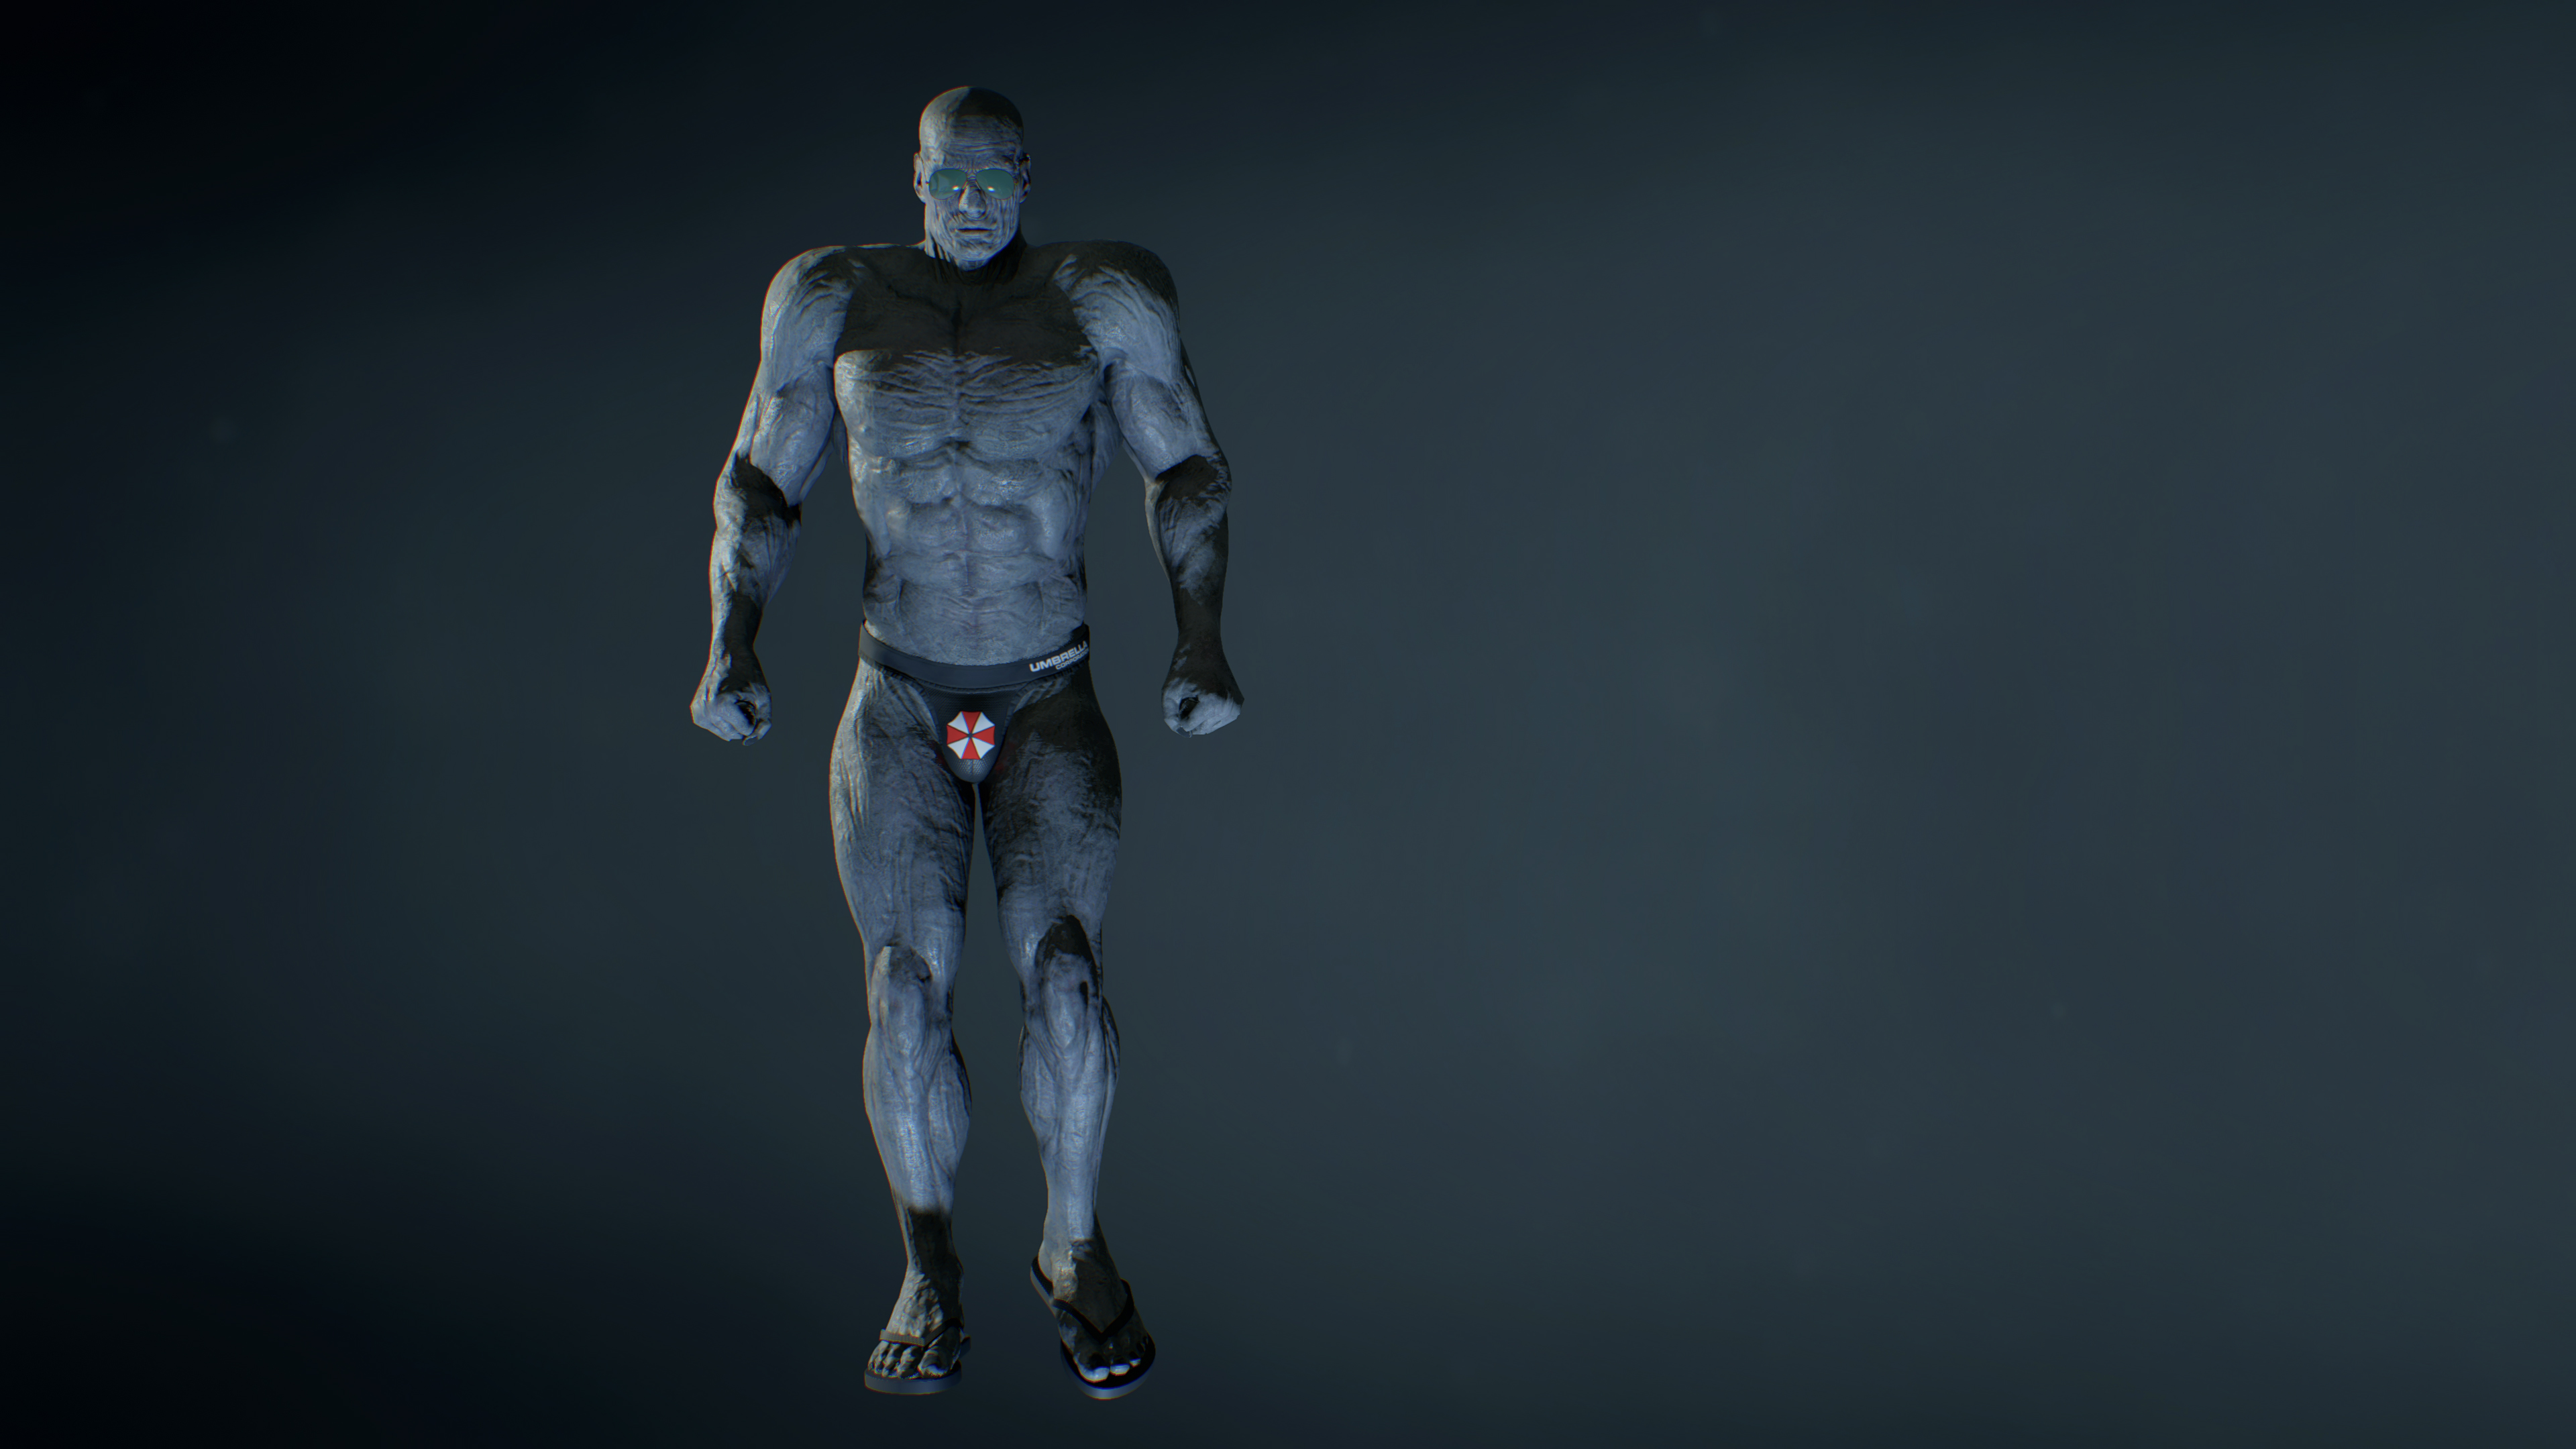 b8736e6e3980f If you own Resident Evil 2 Remake on PC and want to give misterhecks   Beachboy X mod a try